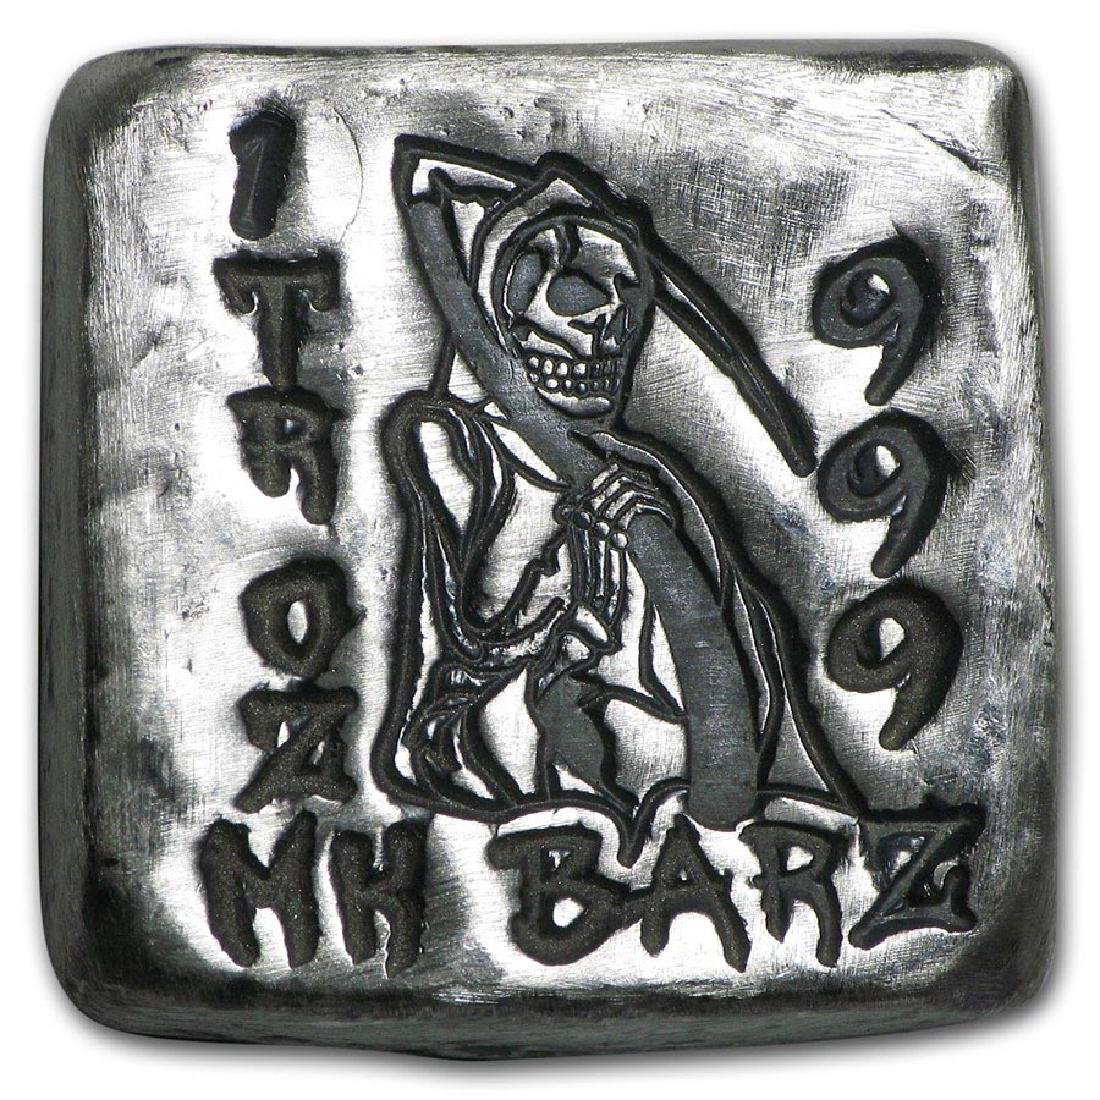 1 oz Silver Square - MK Barz (Grim Reaper, Death is Wai